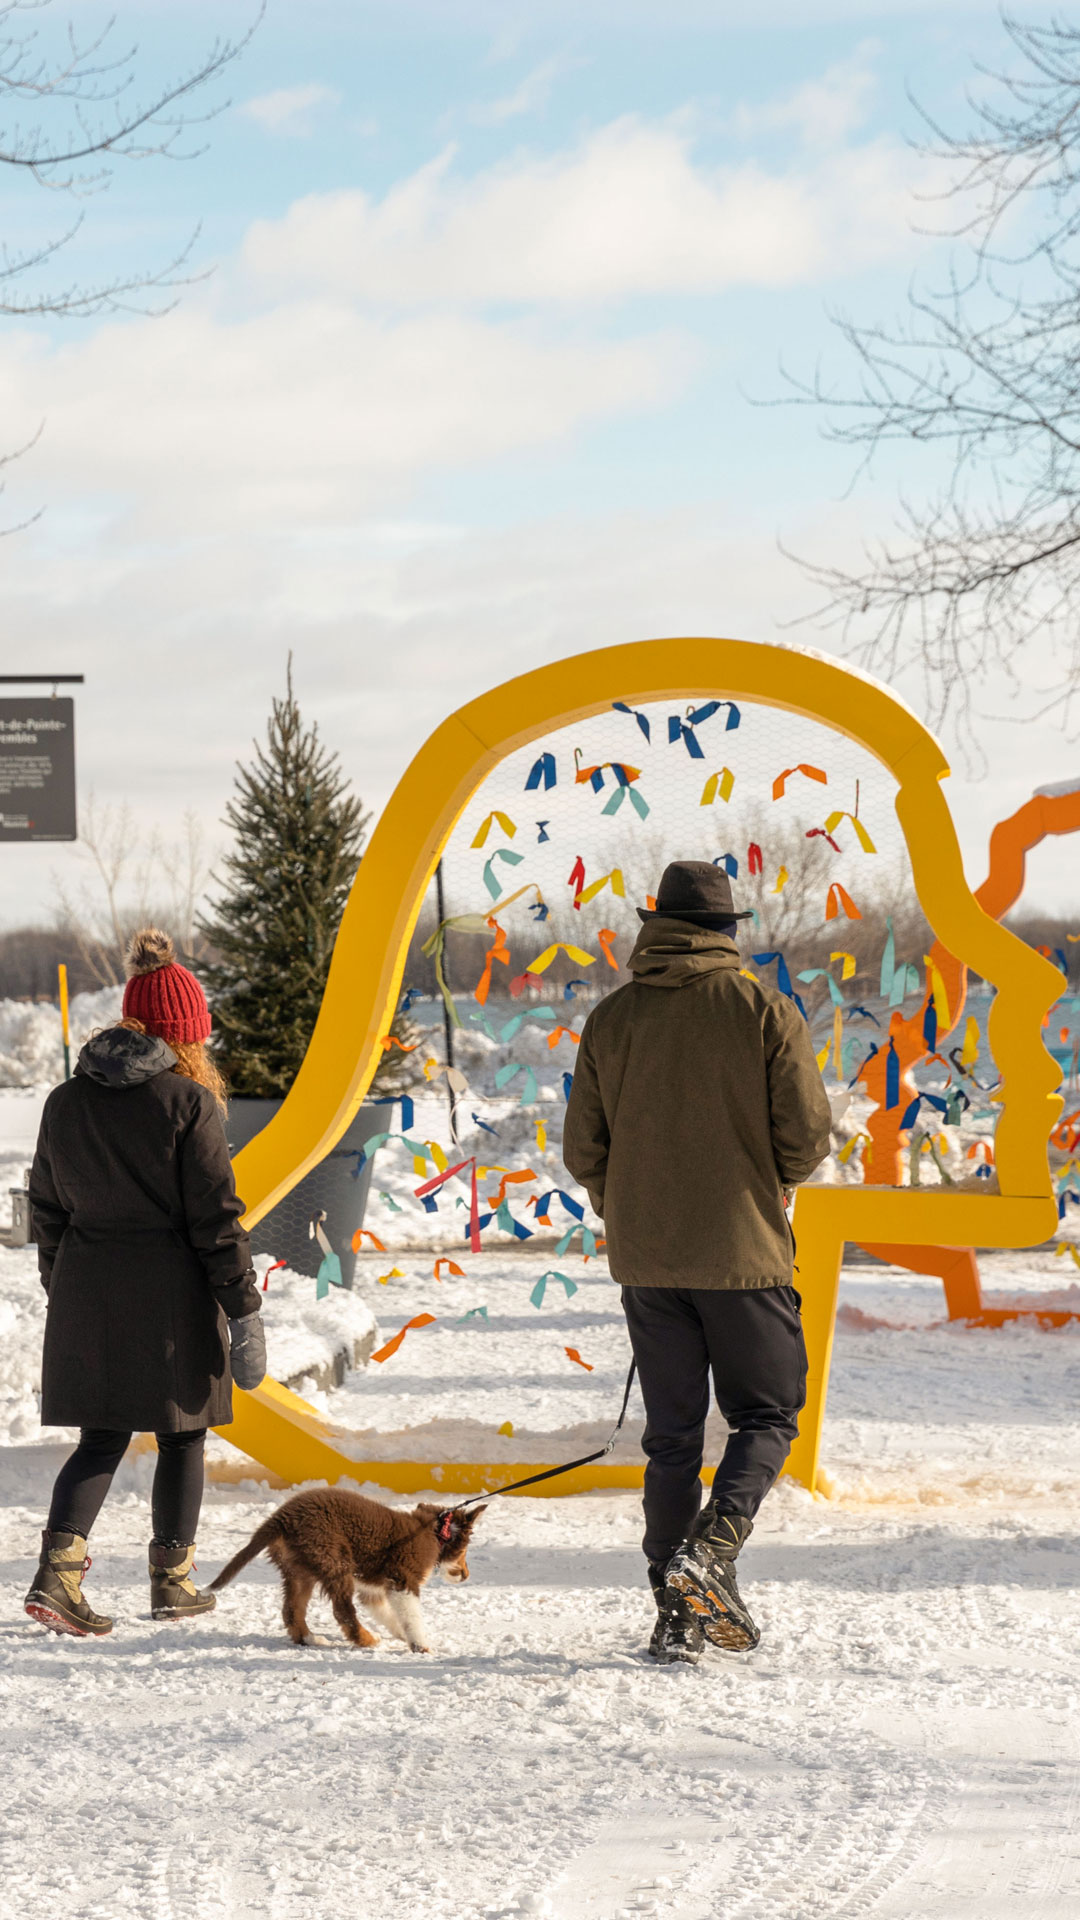 Bright and welcoming urban stops in 17 boroughs of Montreal | MASSIVart - Art Integration